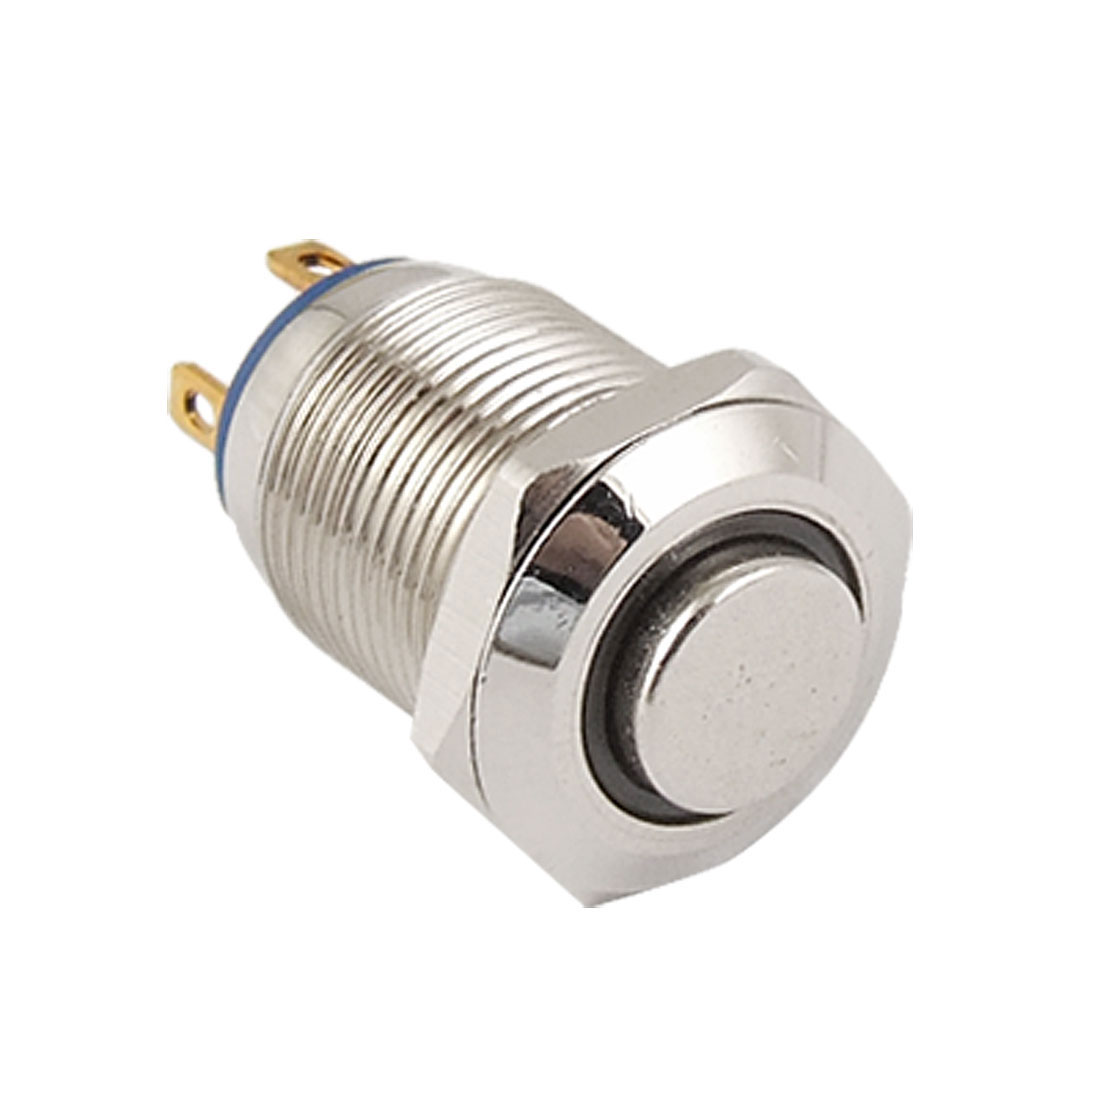 Blue Led Light OFF-(ON) NO 3V 12mm stainless Steel Momentary Push Button Switch